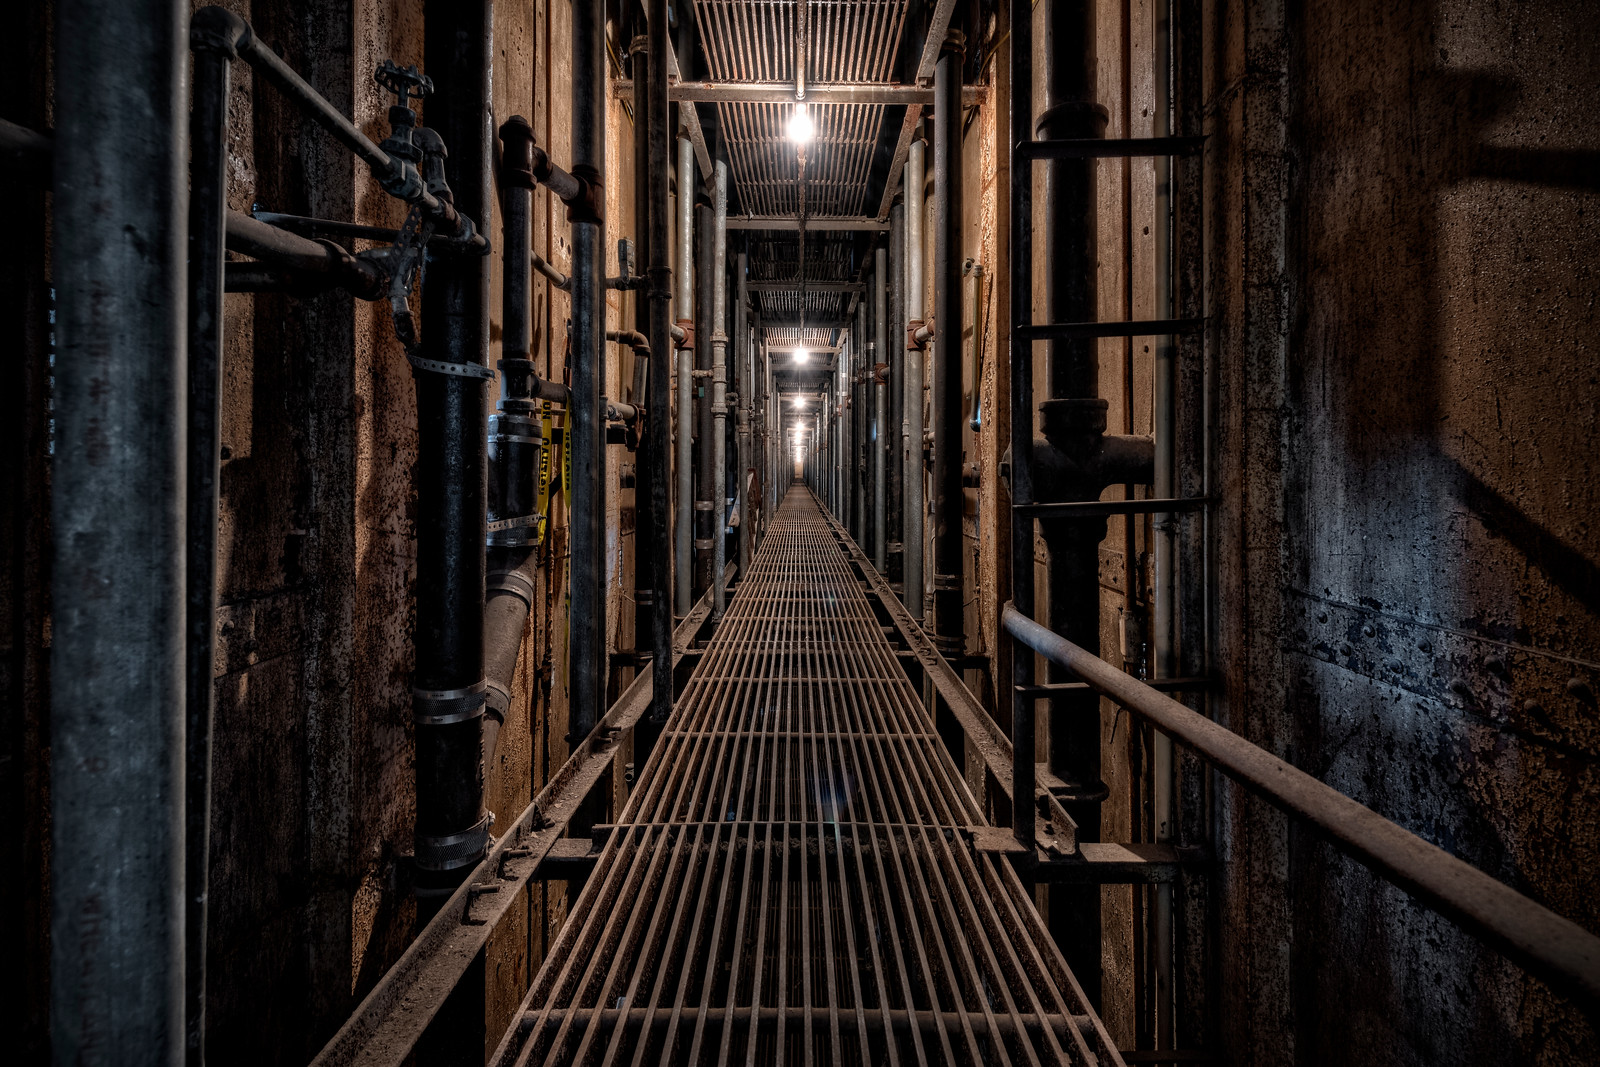 Ohio State Reformatory cell walkway